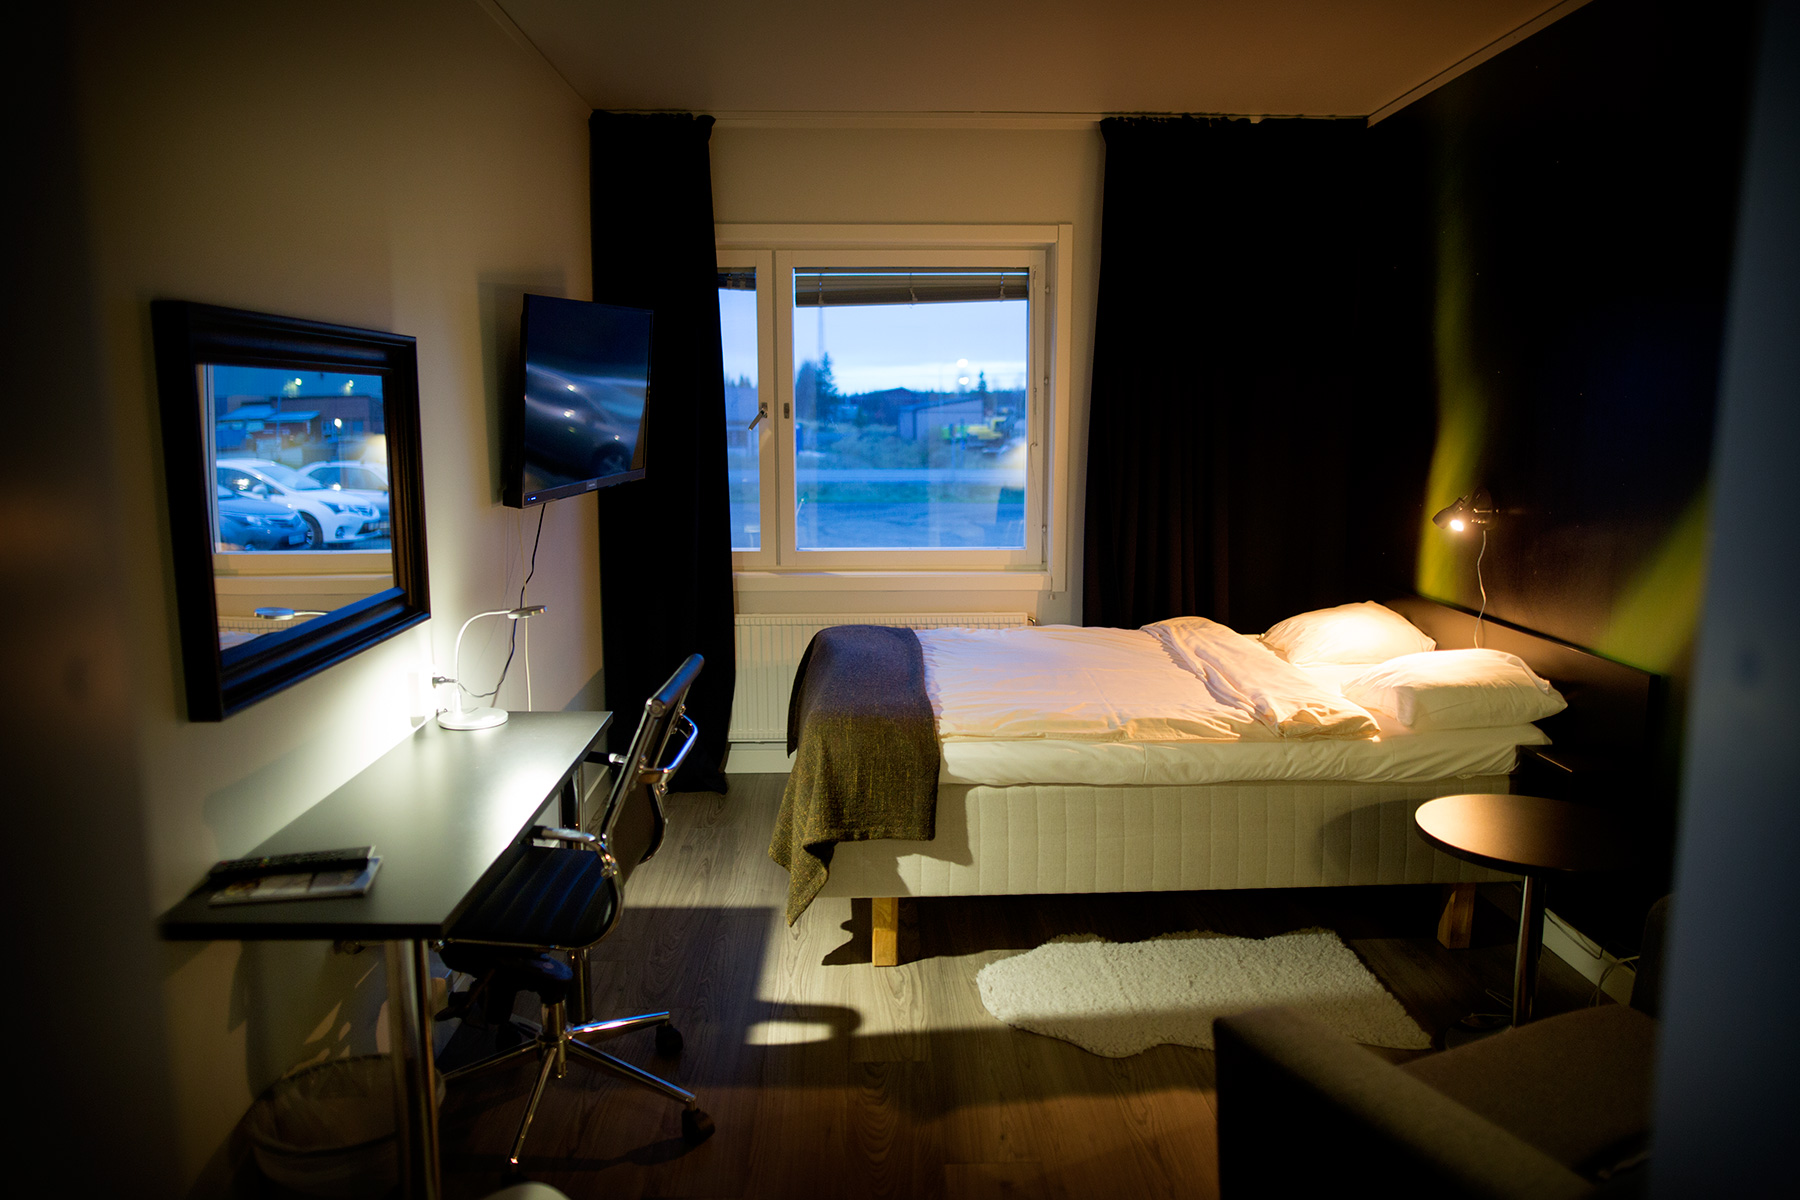 blogg-151014hotellsmedjan1